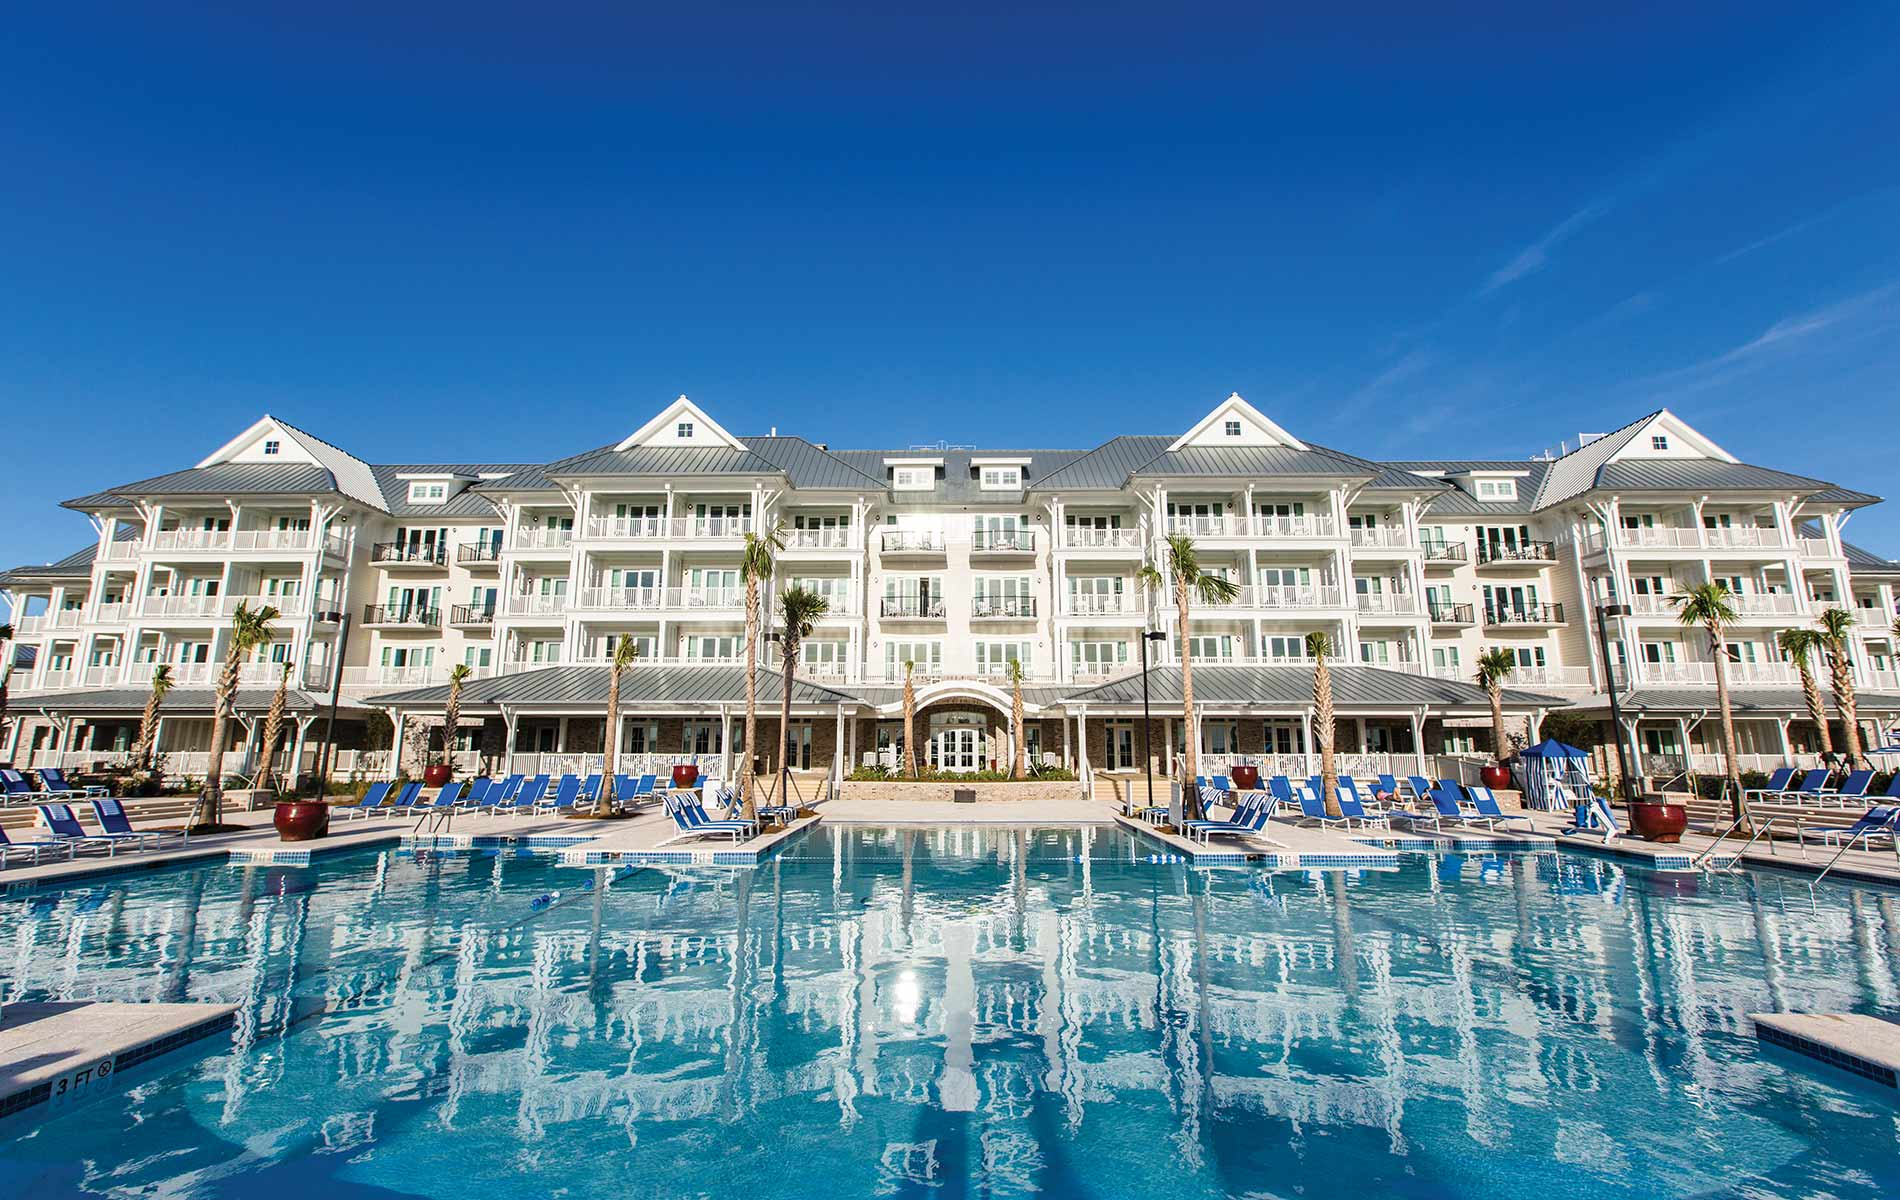 A view of the pool at The Beach Club at Charleston Harbor Resort and Marina